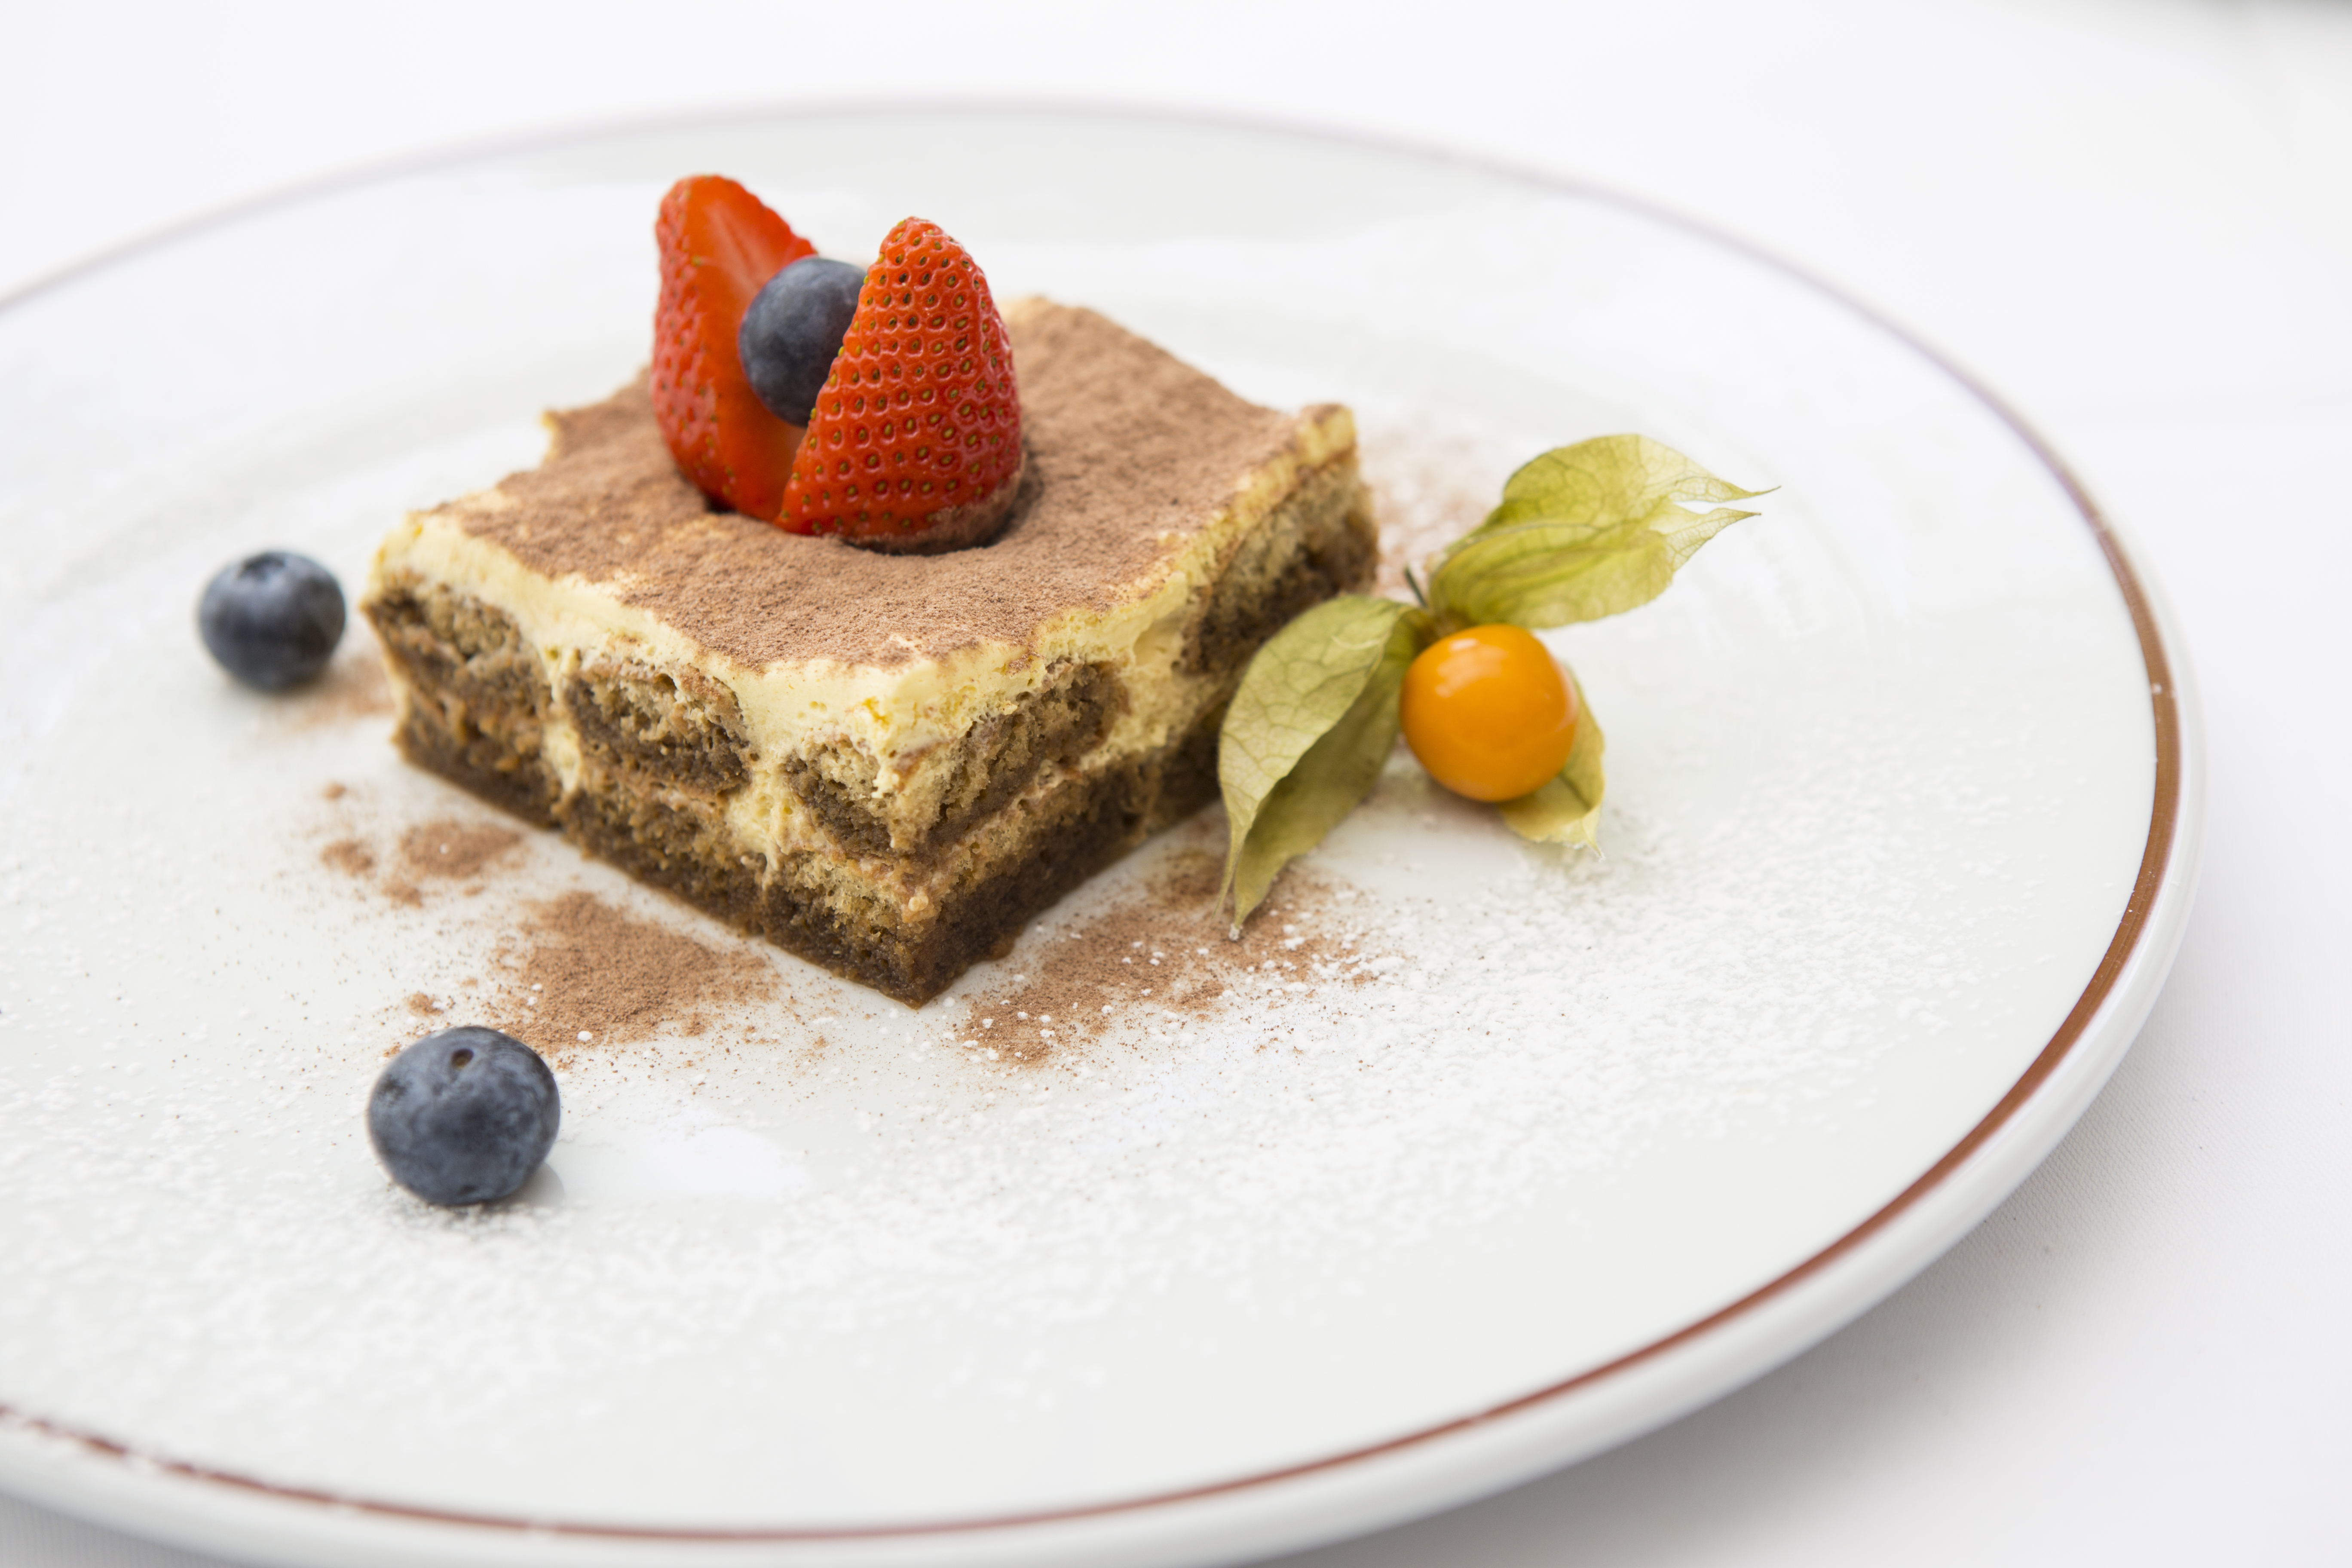 Tiramisu - Savoiardi biscuits lightly soaked in a coffee punch, with mascarpone cheese and amaretto liqueur -£5.5 (1)